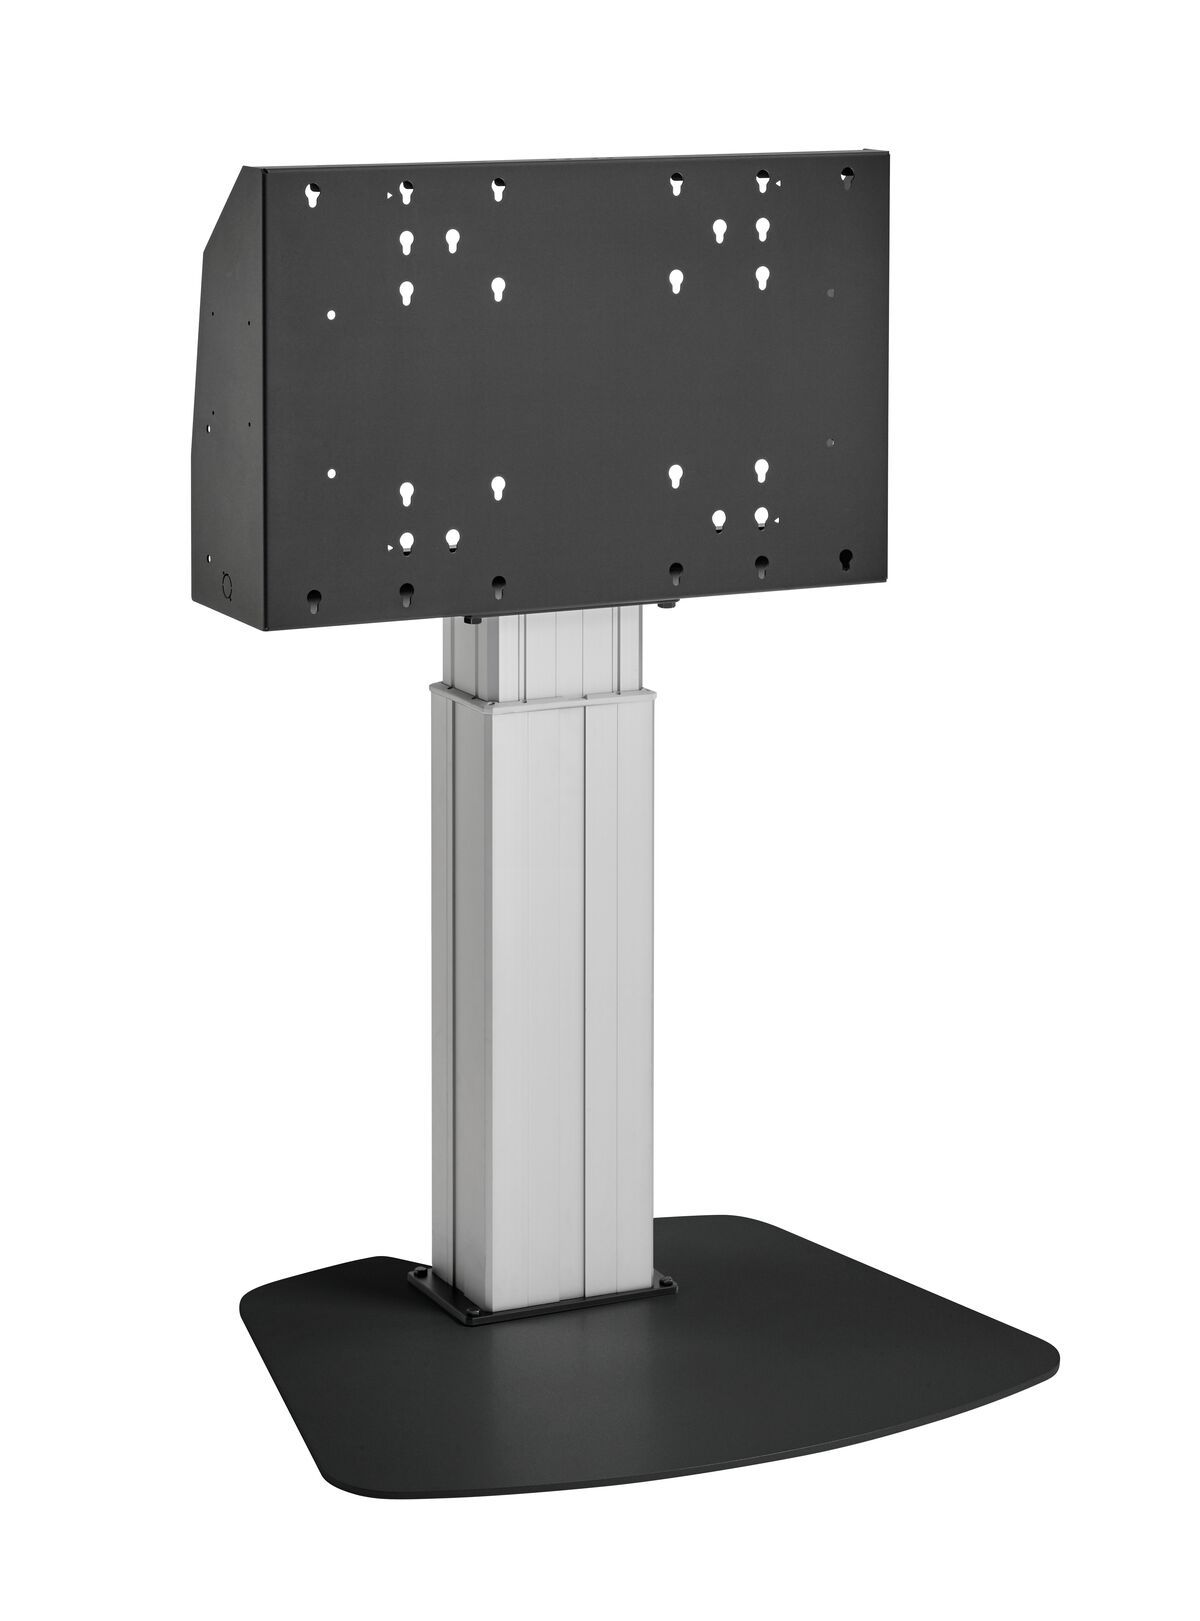 Vogel's FE5064B Motorized floor stand 50 cm - Product